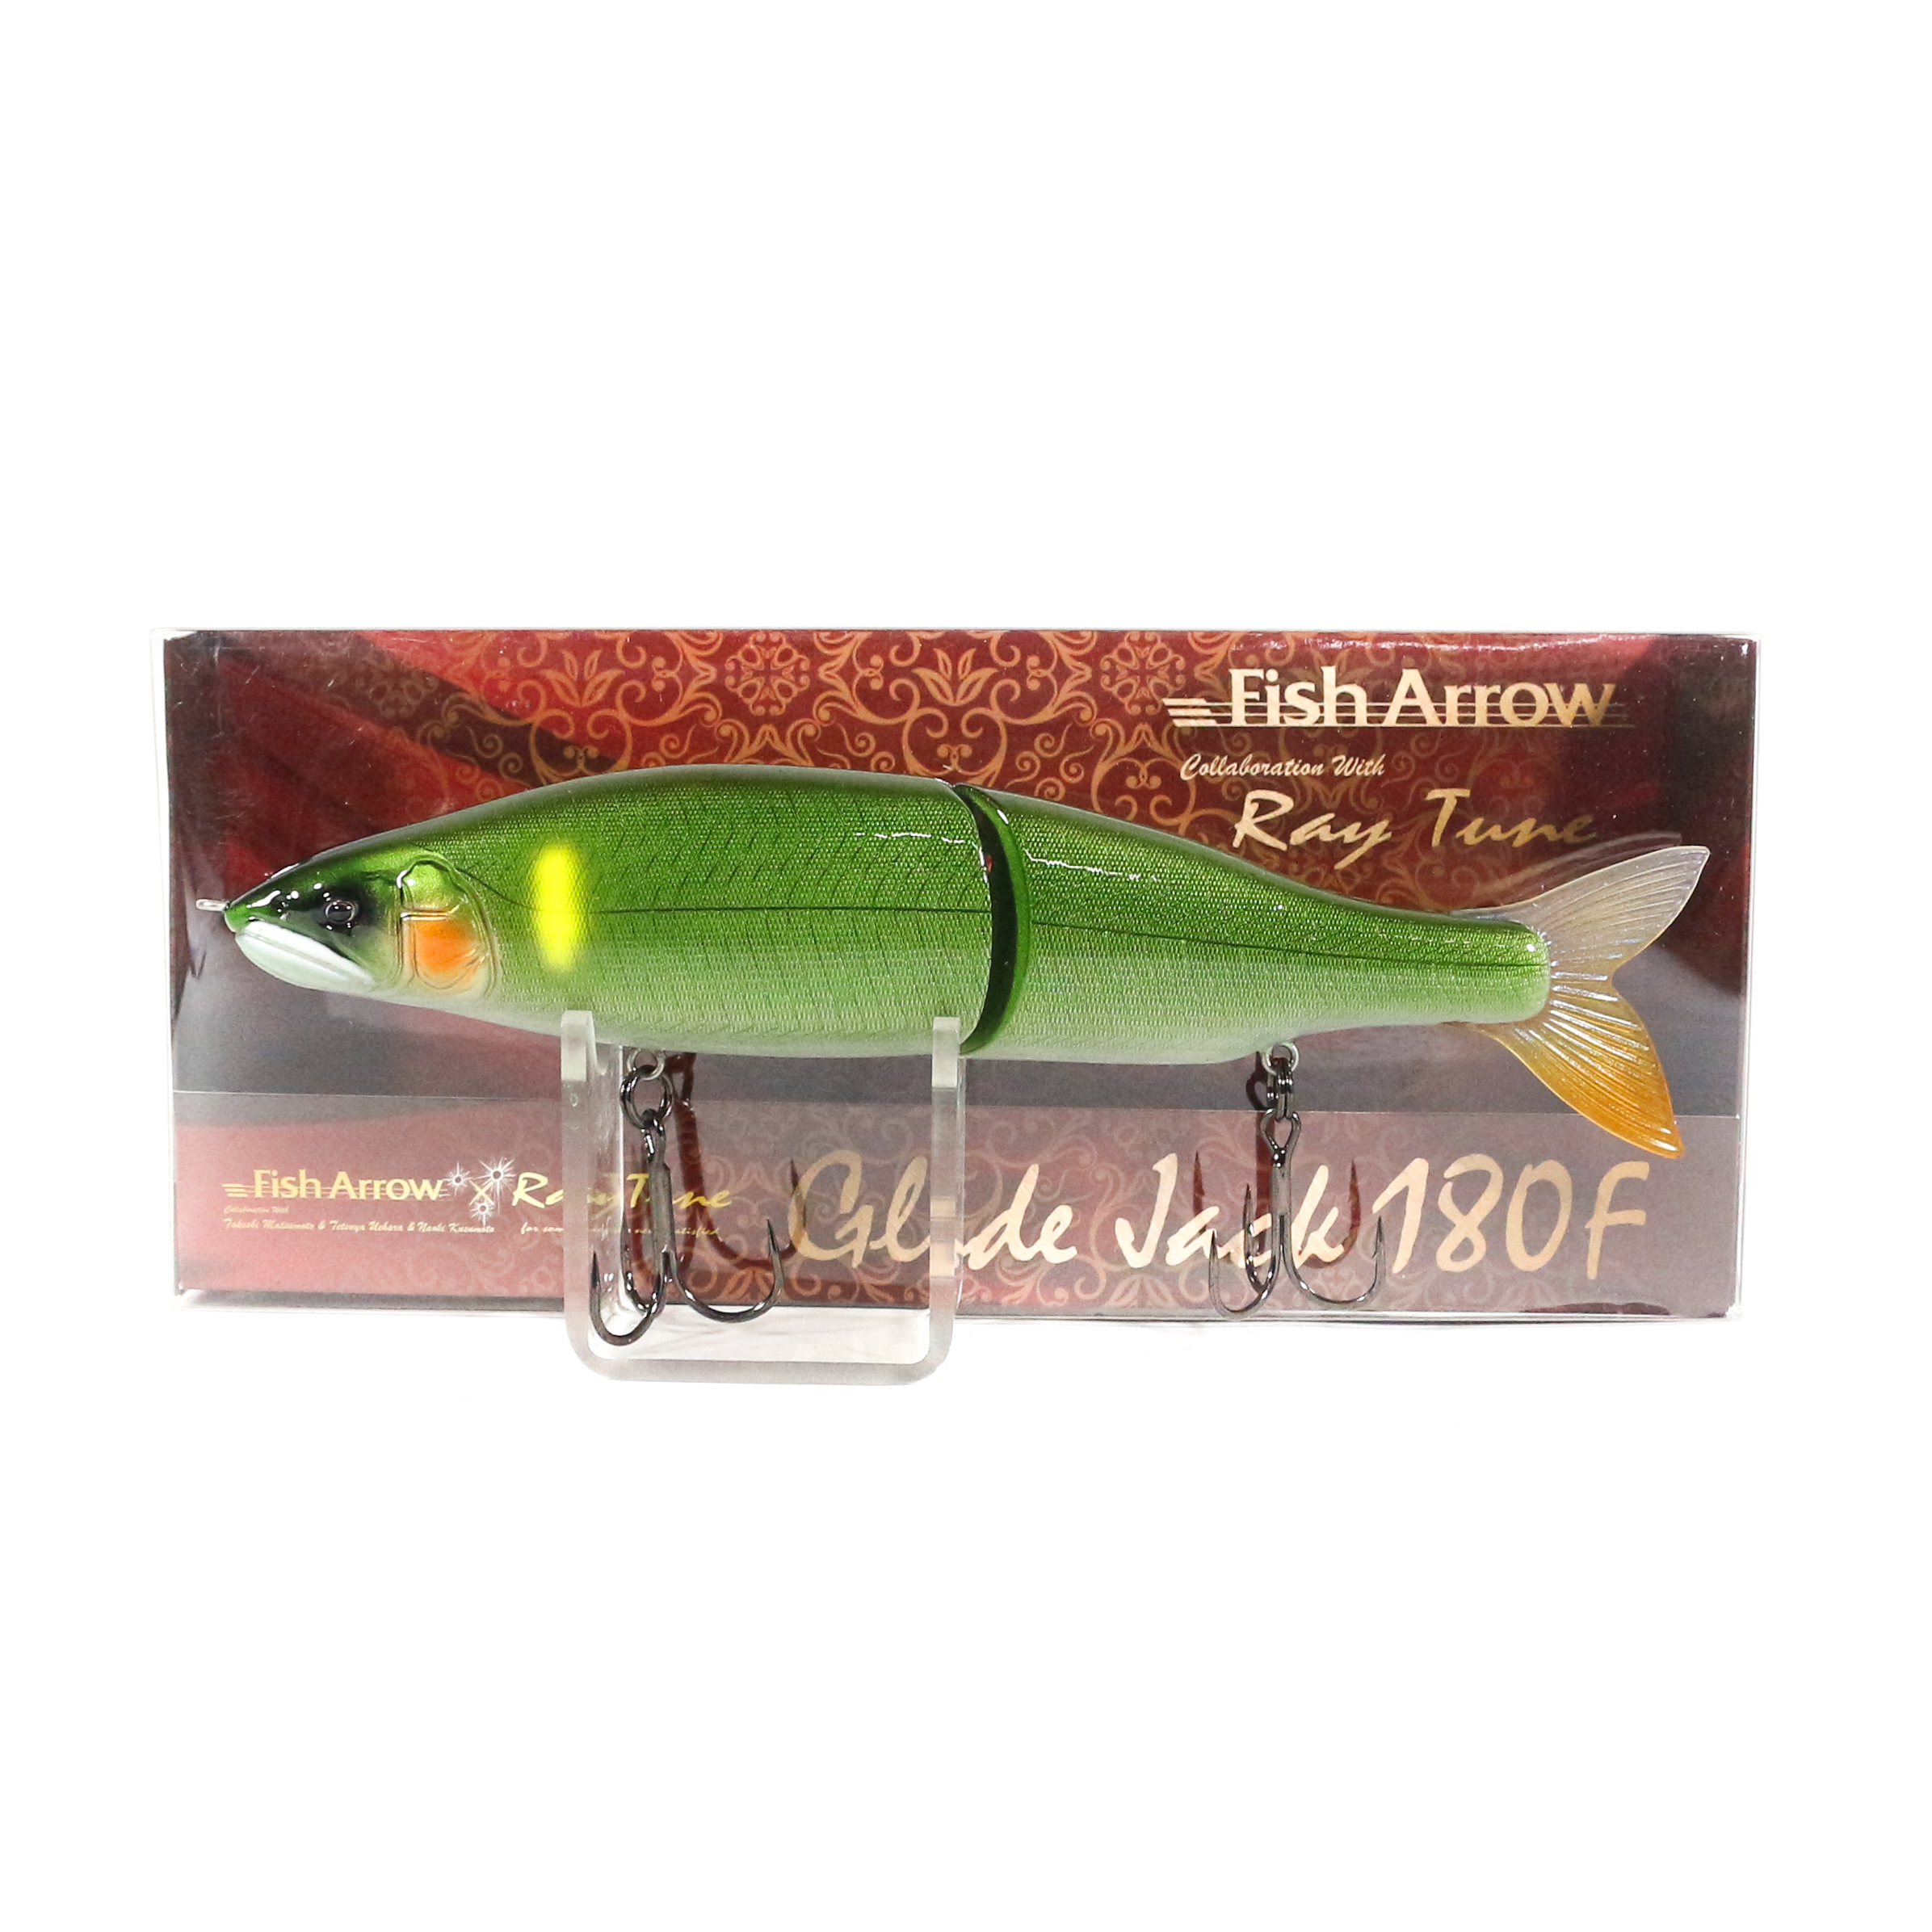 Fish Arrow Glide Jack 180F 57 grams Floating Lure #03 (2312)